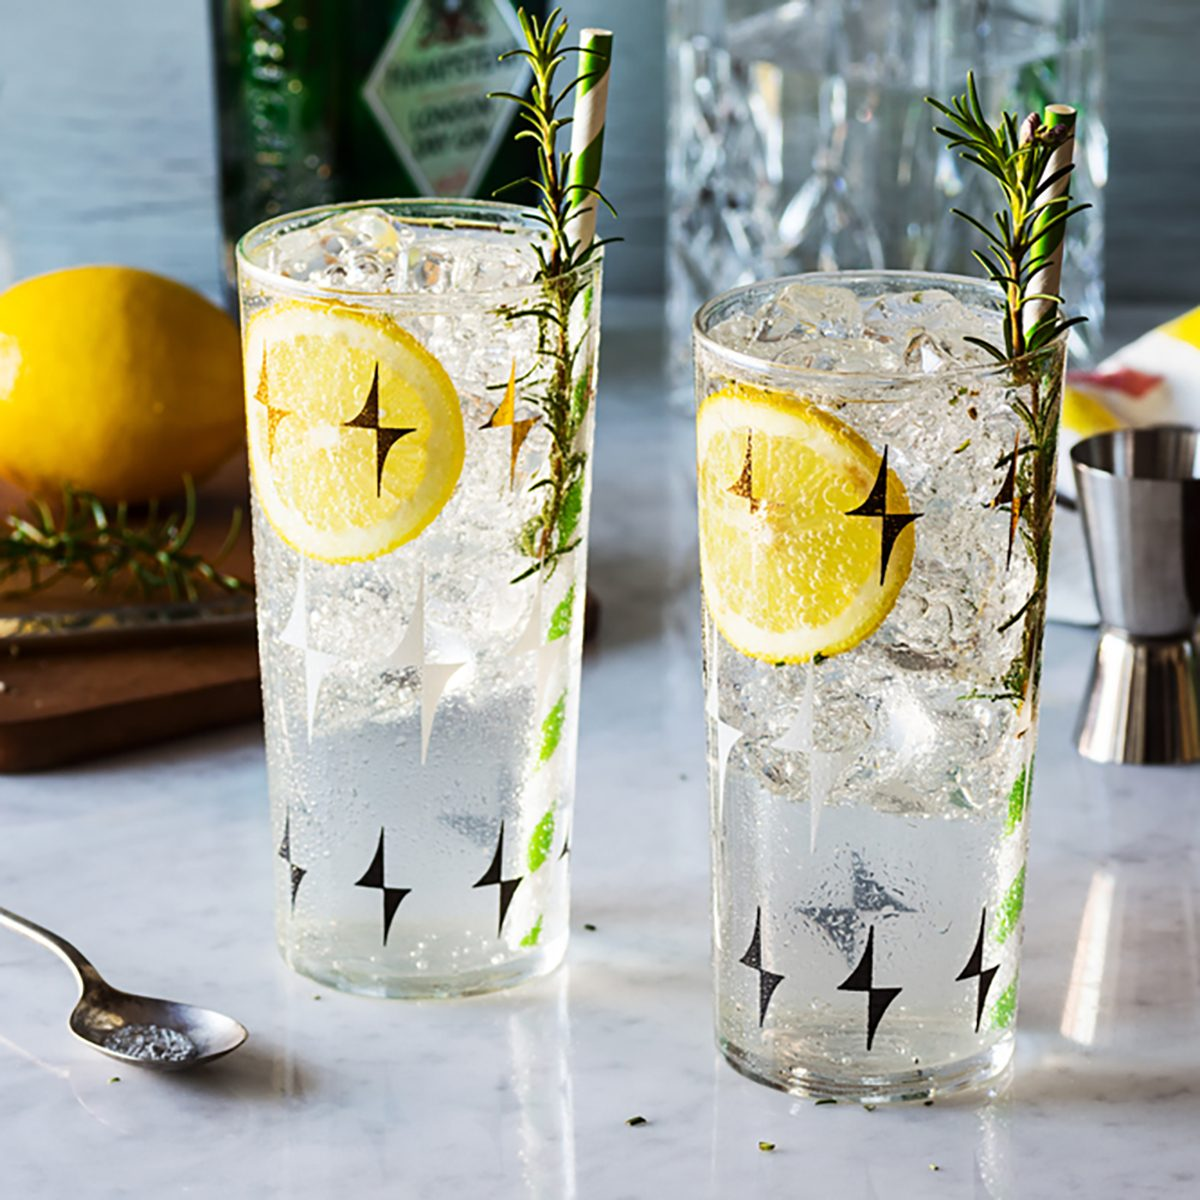 Rosemary Lemon Gin Fizz Alcoholic Cocktail on Bar with Ingredients; Shutterstock ID 362843429